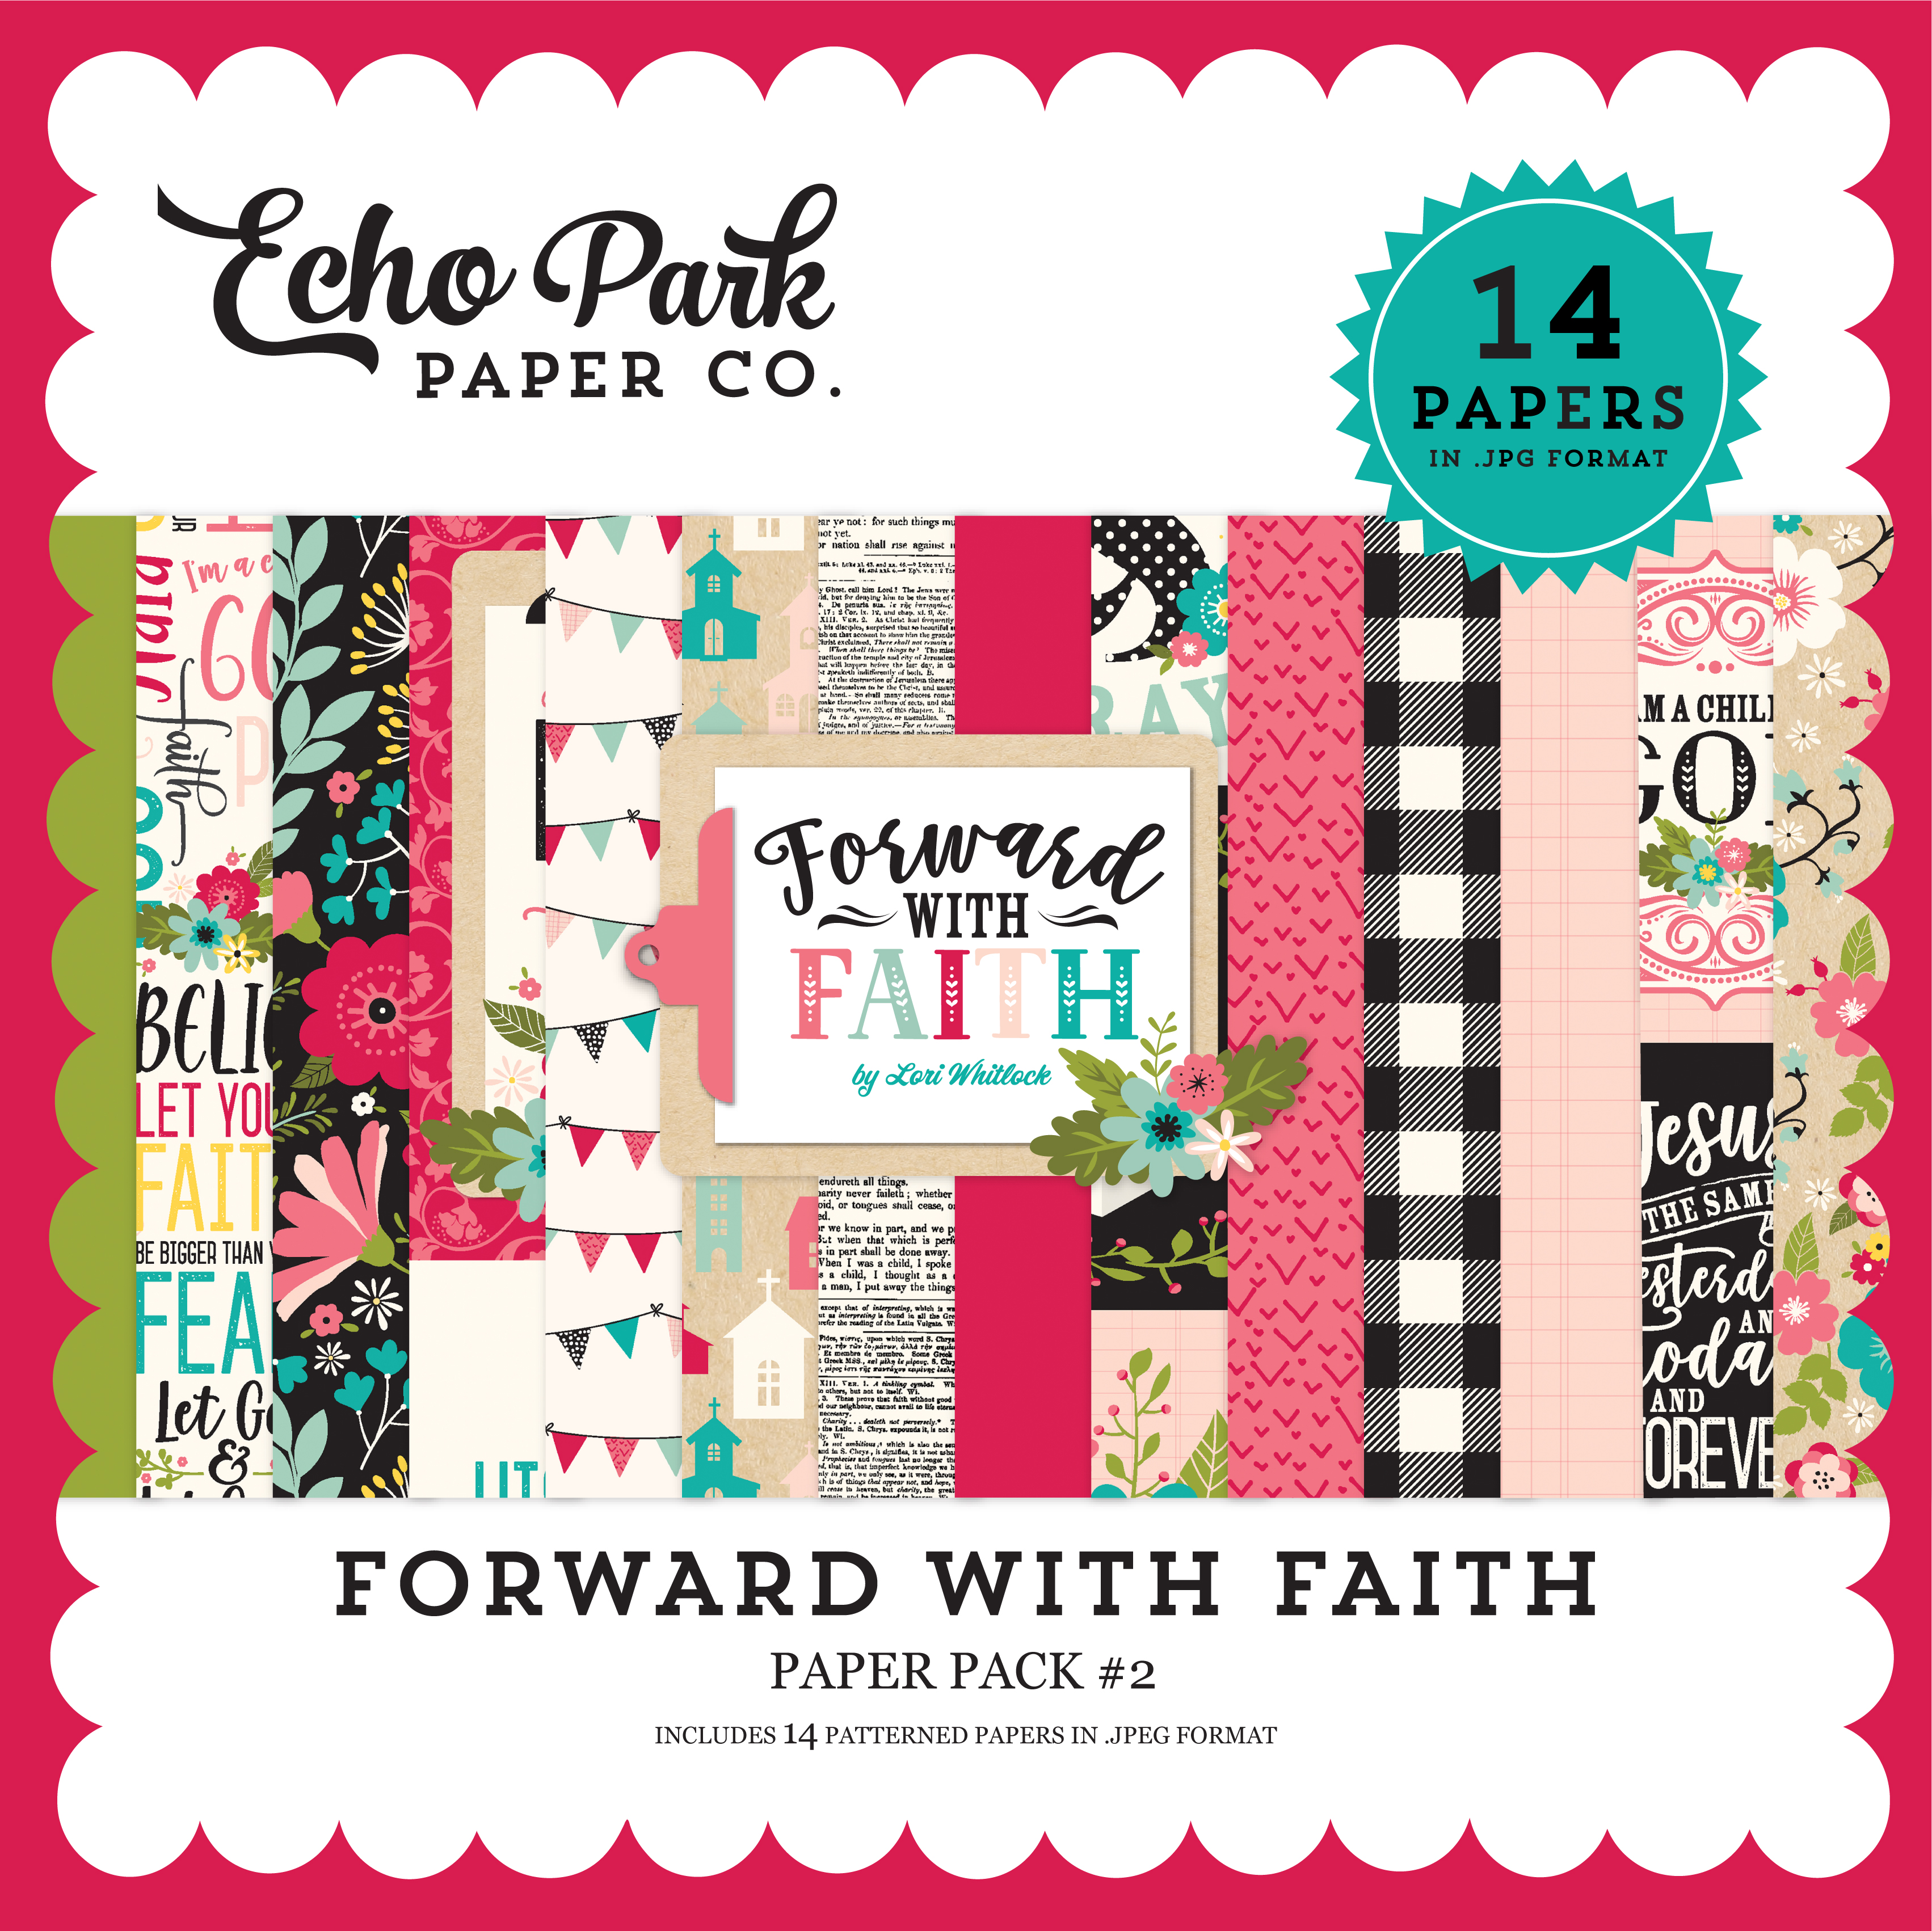 Forward with Faith Paper Pack #2